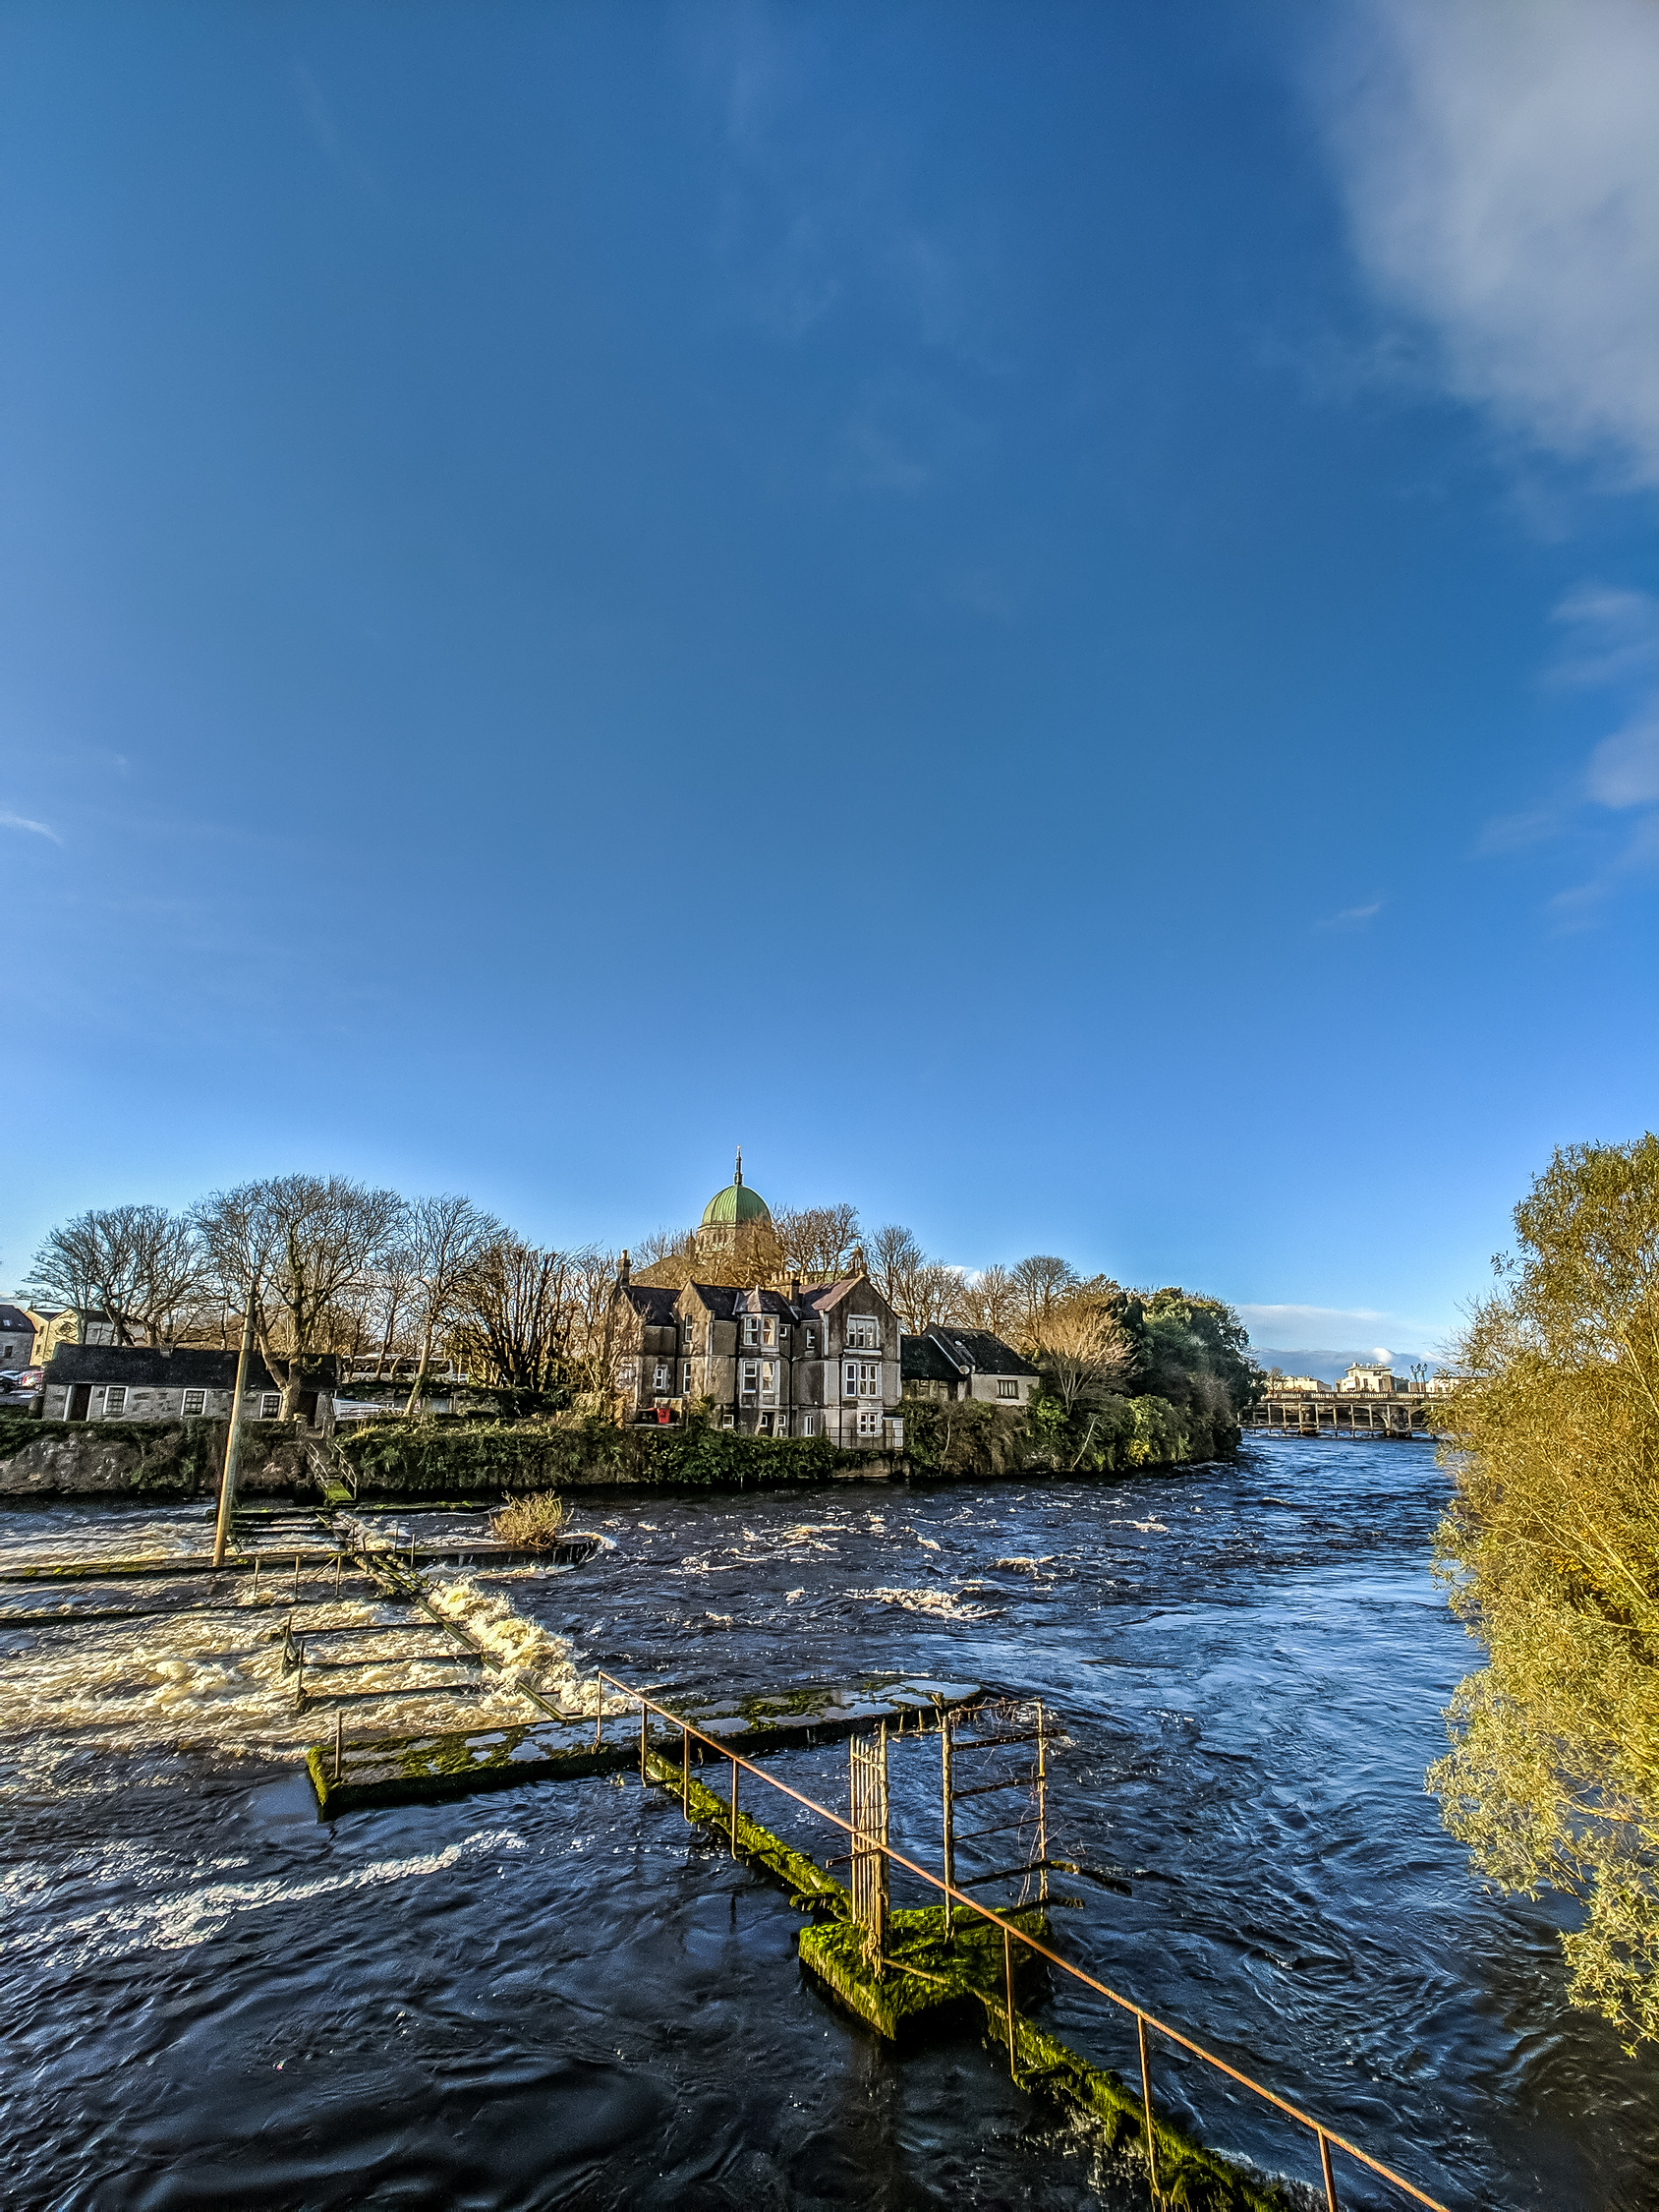 The fastest flowing river in Galway Ireland